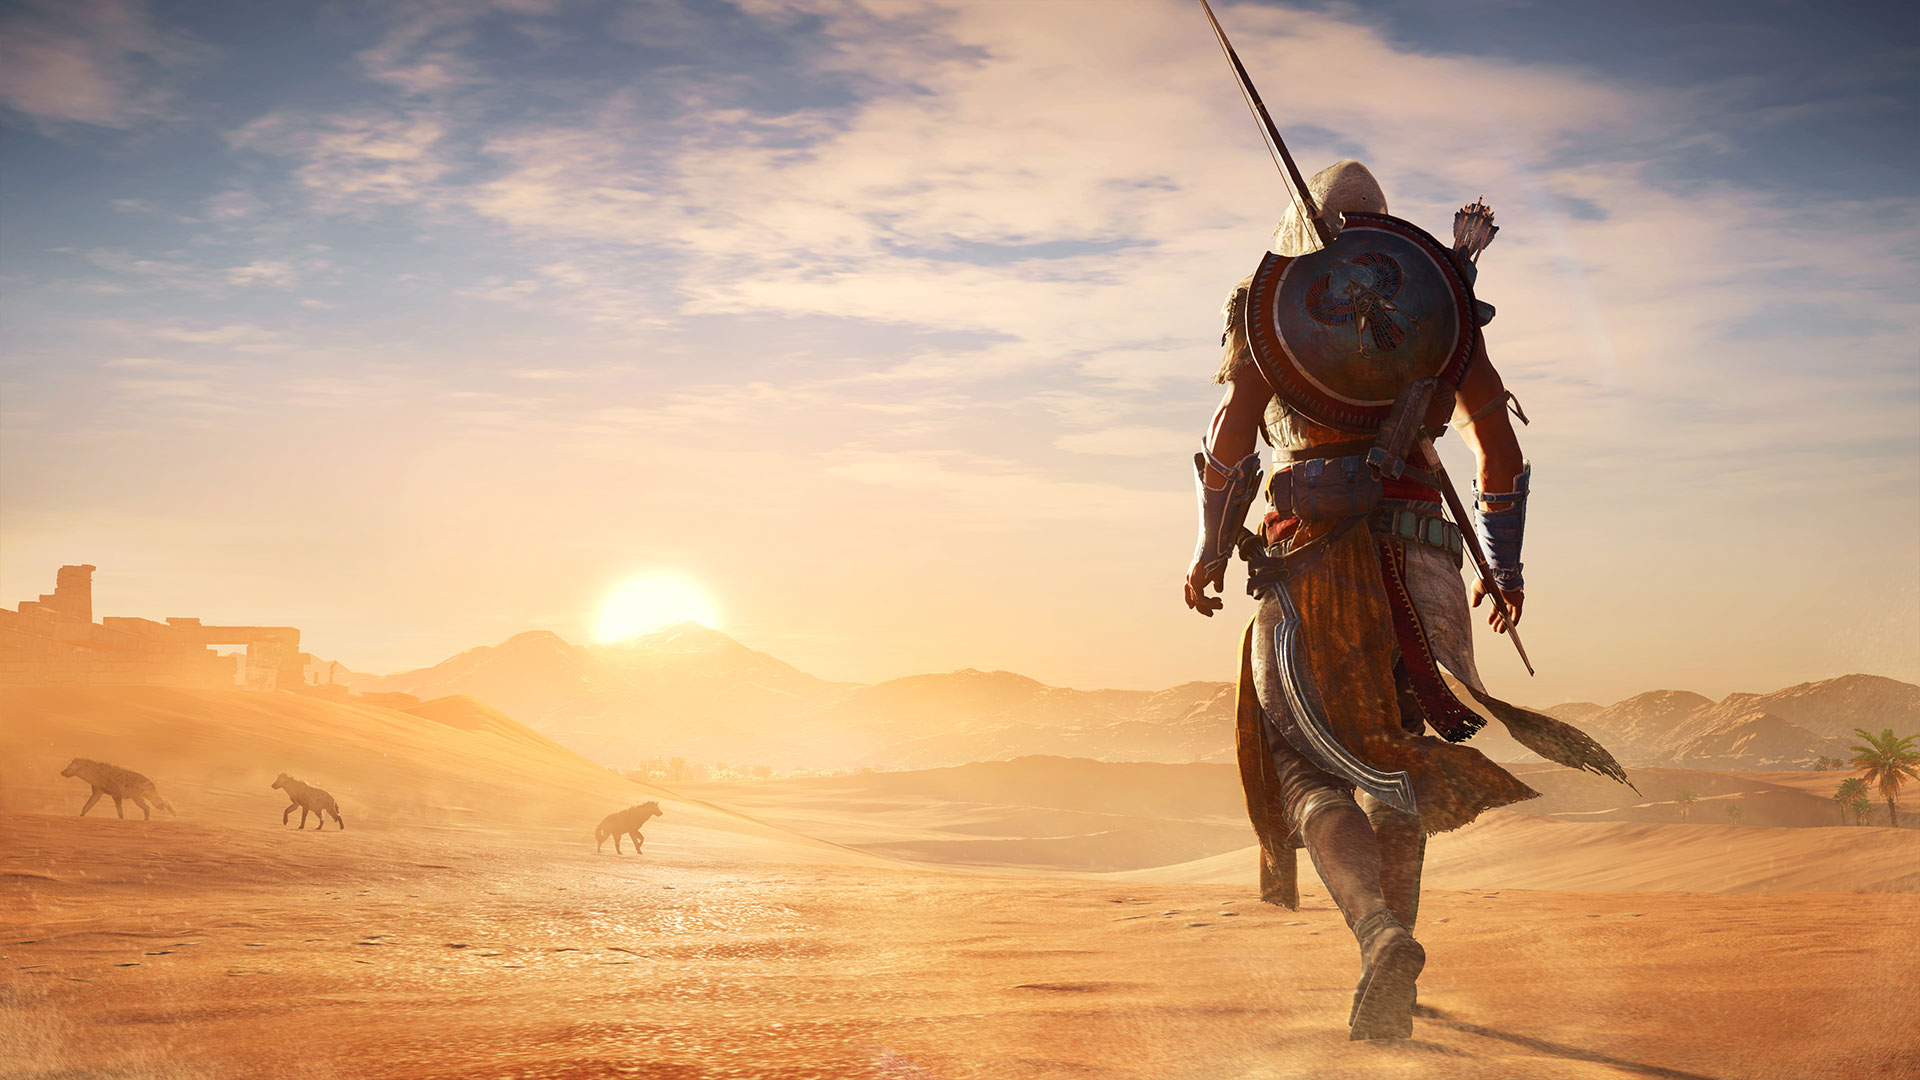 1510137168_into the desert.jpg - Assassin's Creed: Origins